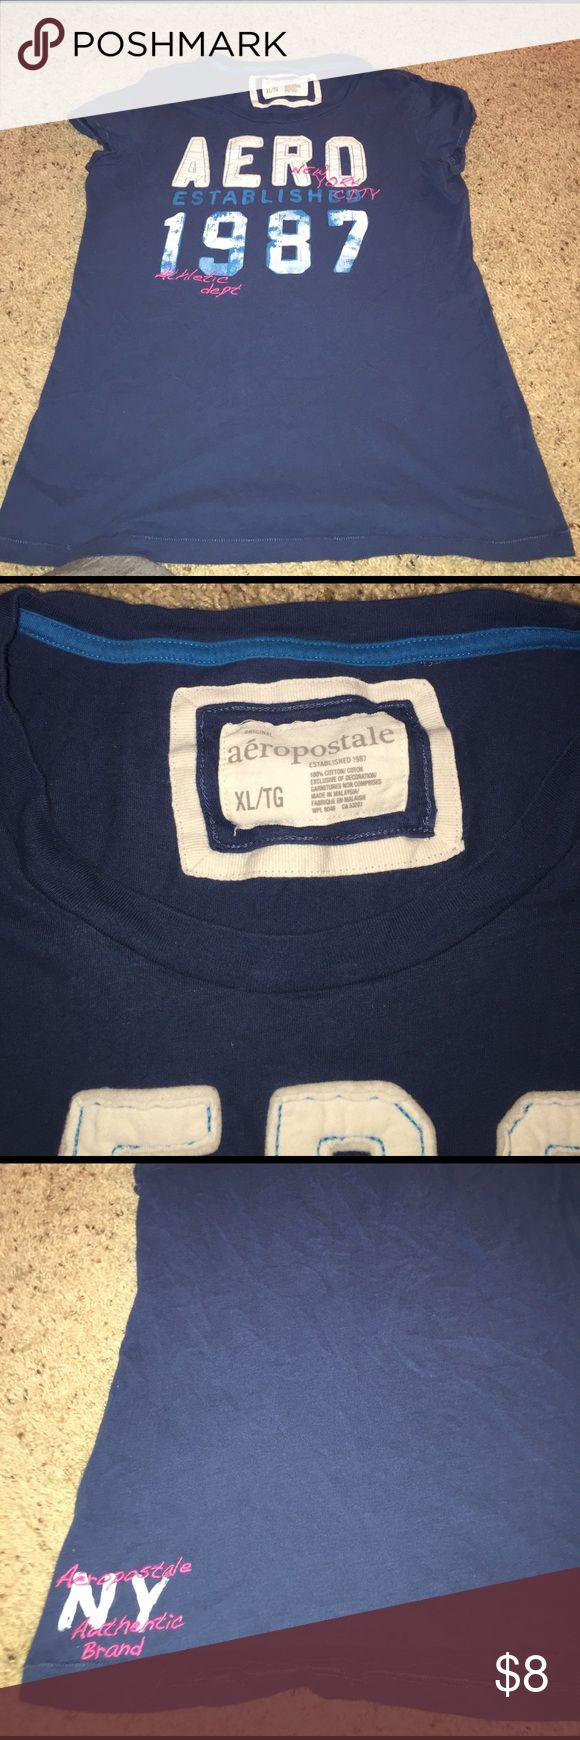 Aeropostale Aero Blue Tee Aeropostale Aero Blue Tee. Aero is stitched on. Tee is in great condition wore a handful of times. Aeropostale Tops Tees - Short Sleeve